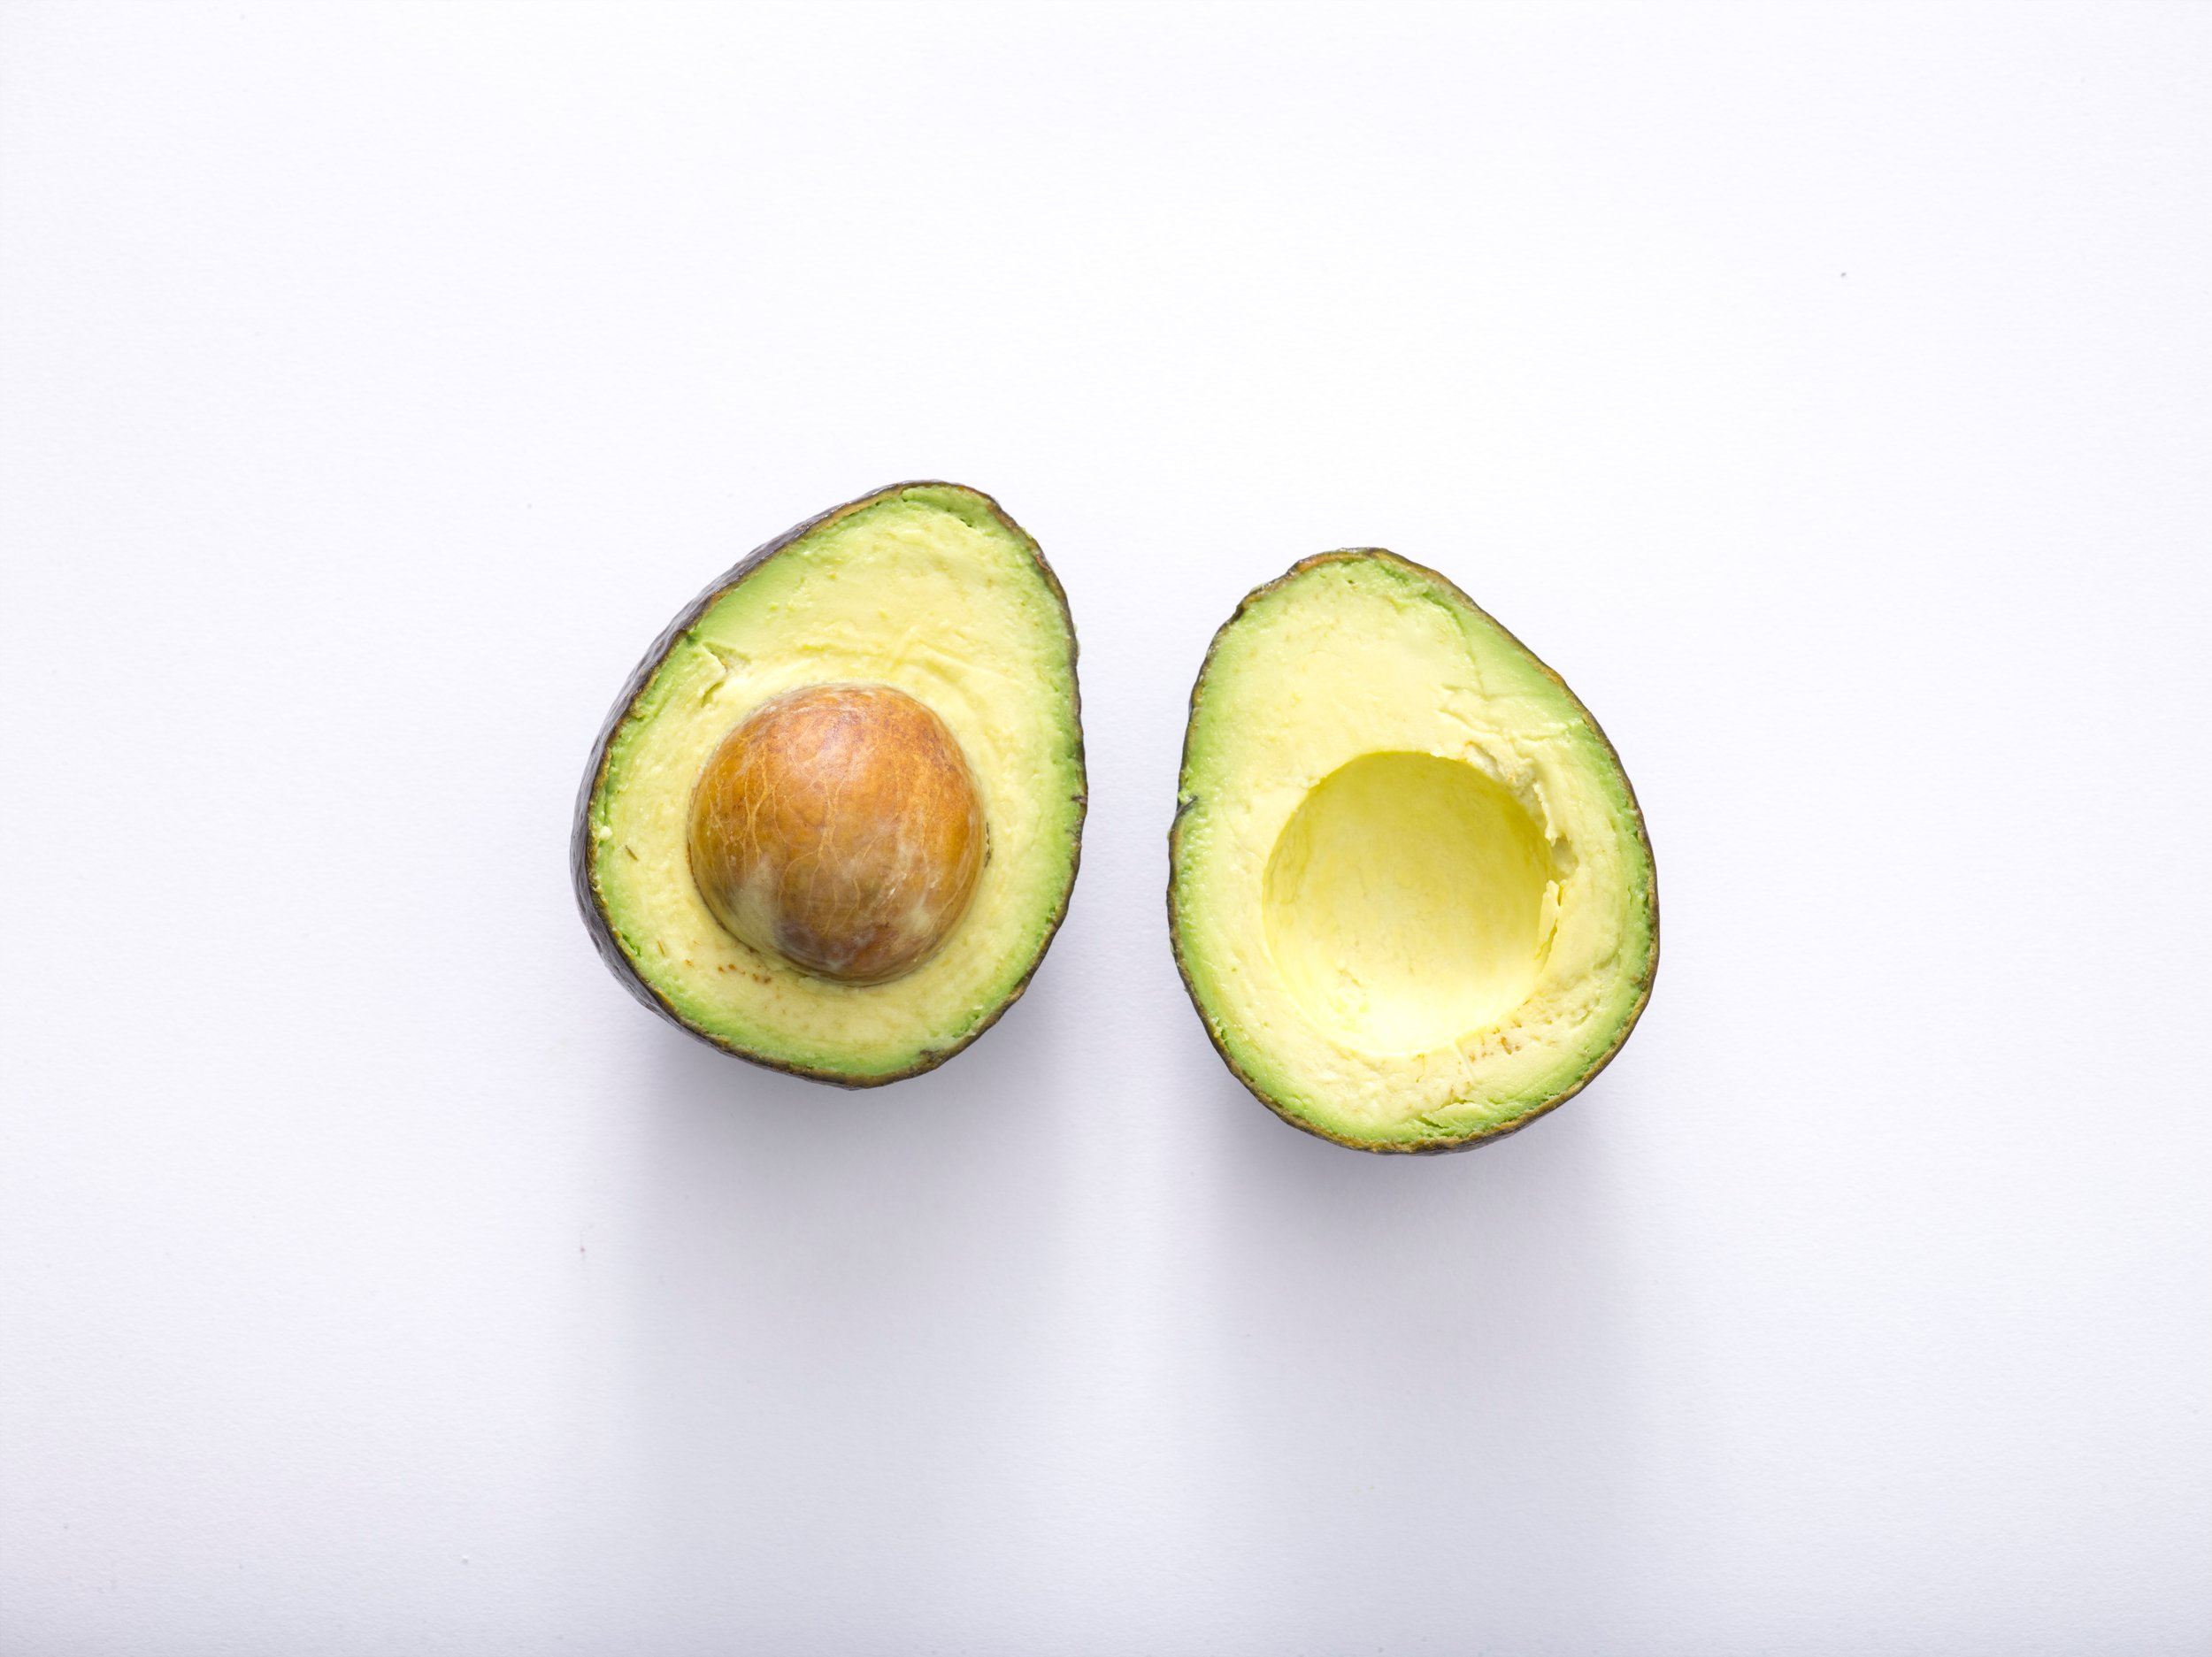 Avocado - Wondering why avocado toast is all the rage? It is the fat that fuels you. Avocados have high levels of Polyunsaturated fat and Monounsaturated fat, which increase the absorption of soluble vitamins. They're also a great source of B vitamins, which increase energy and metabolize protein and carbs. Lastly, they have growth hormones, which boost the body's ability to build muscle.